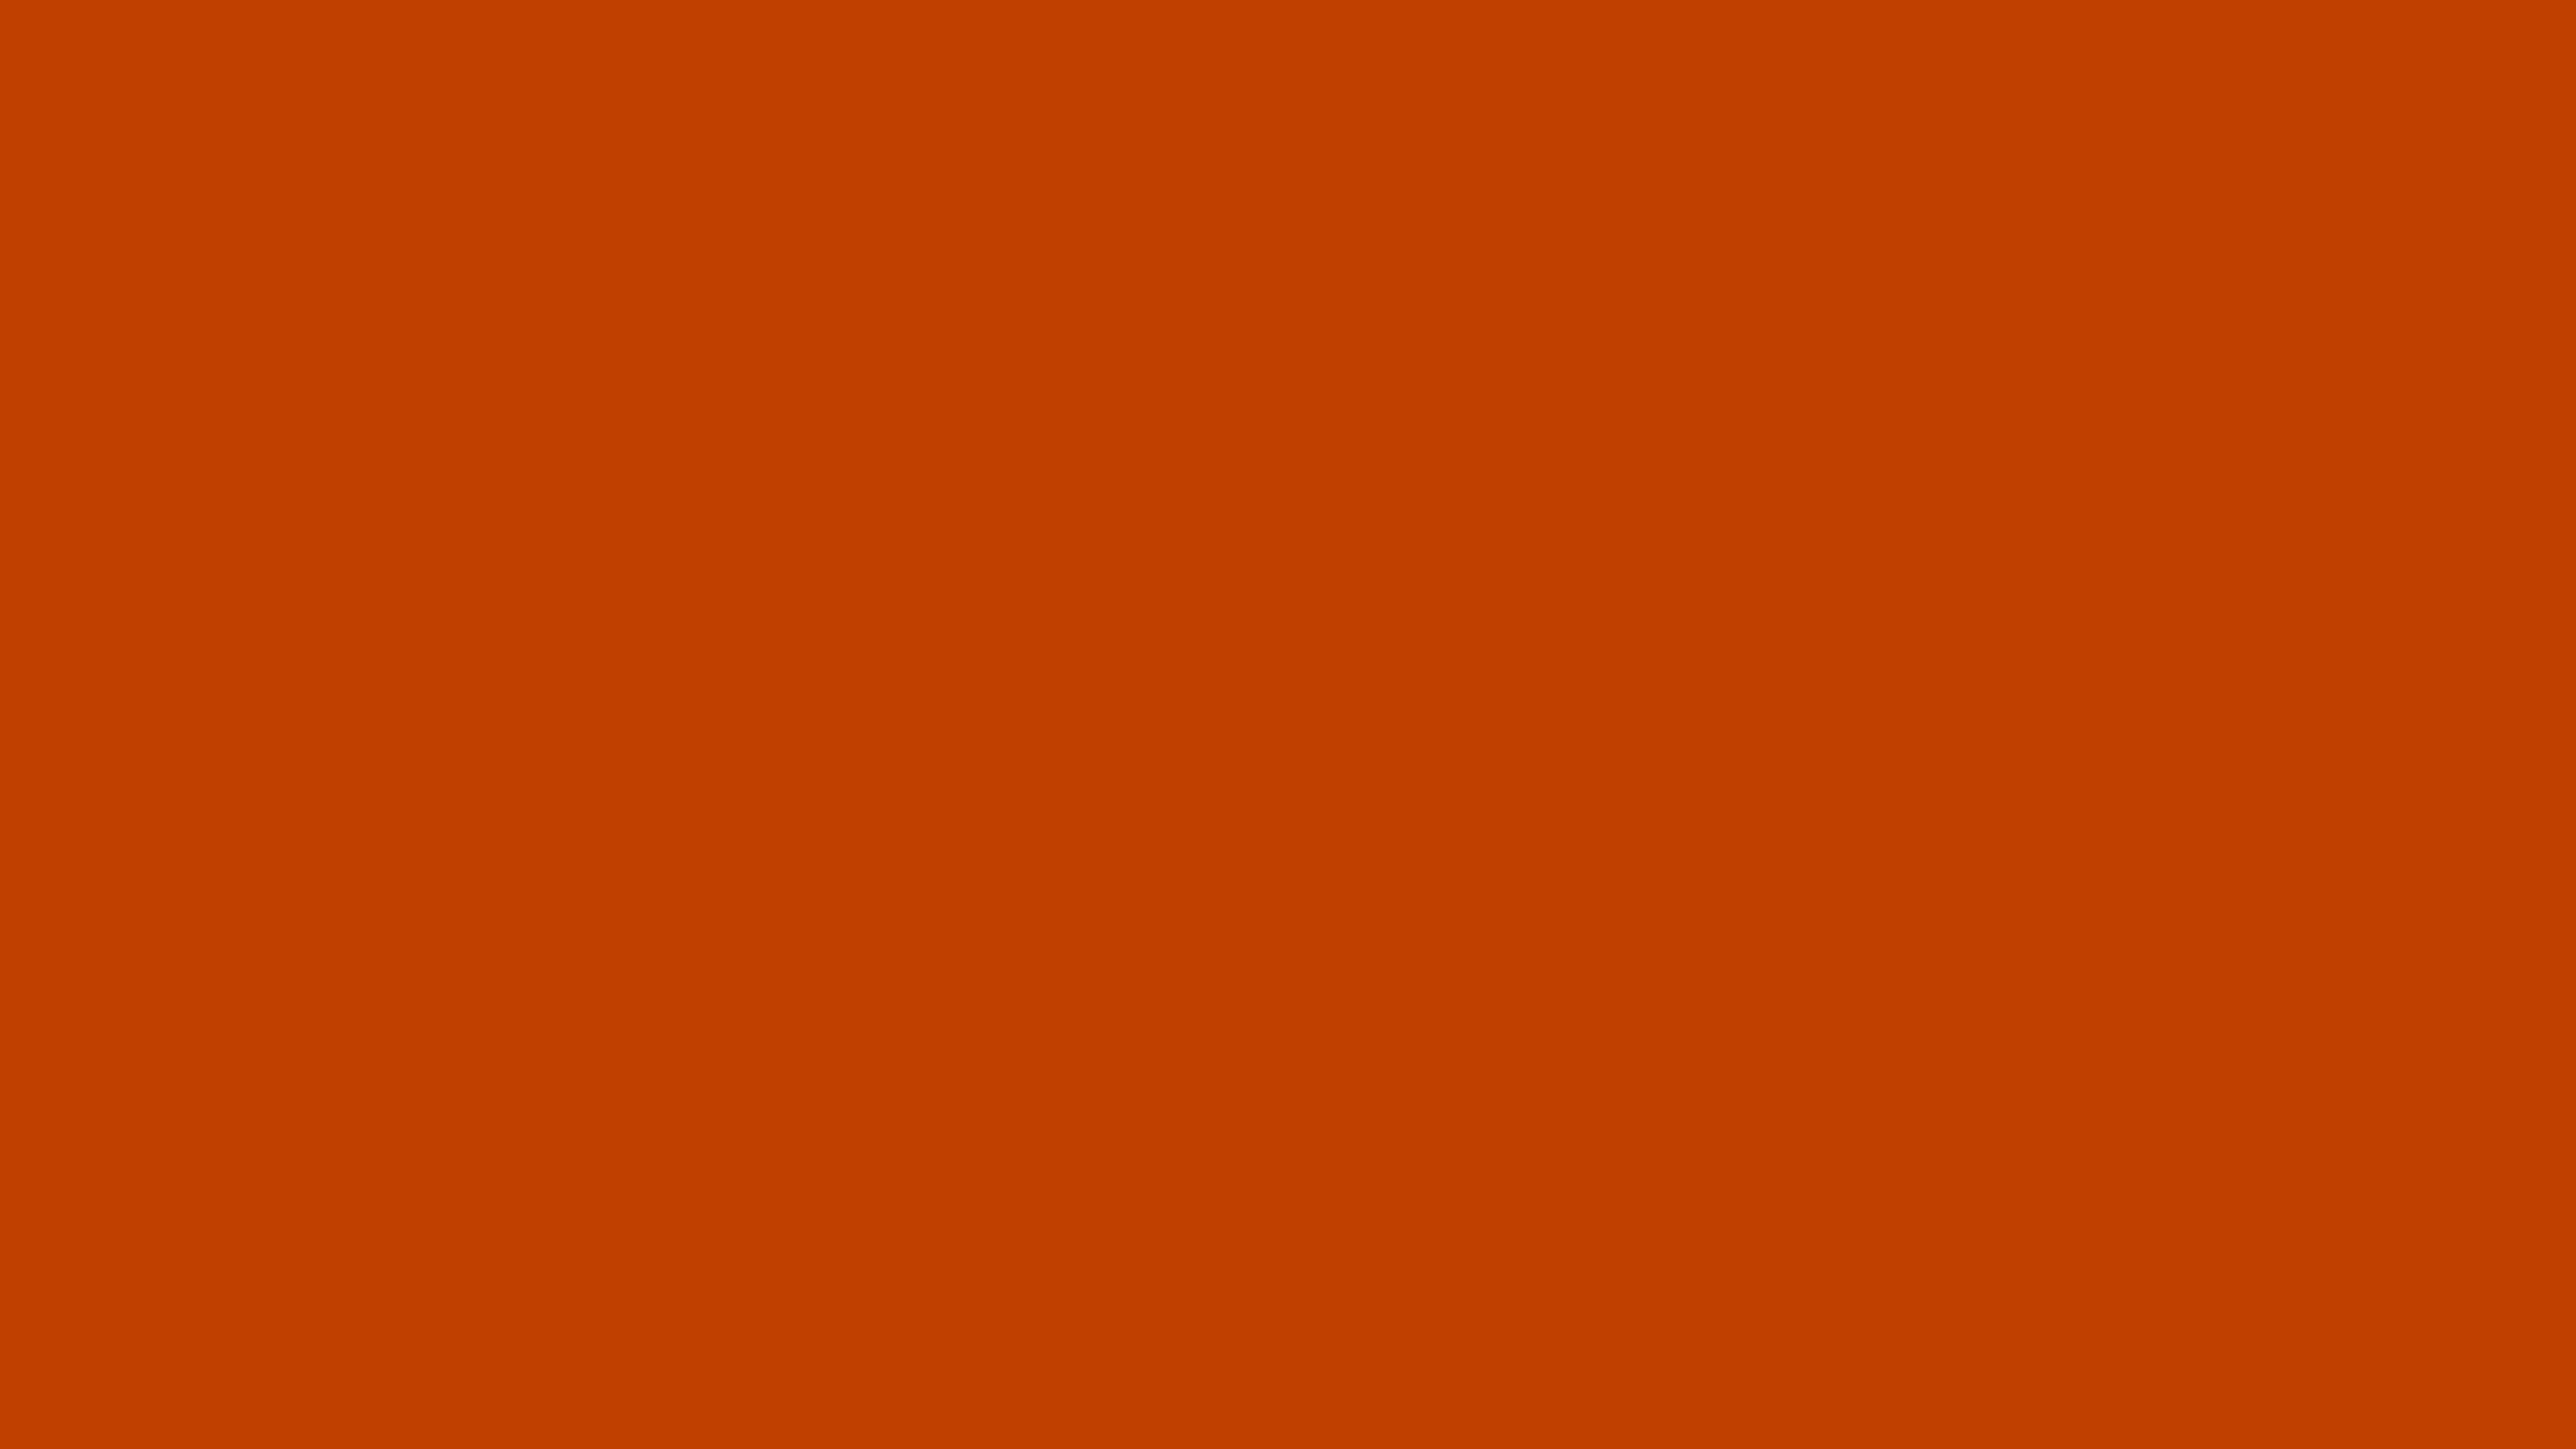 3840x2160 Mahogany Solid Color Background